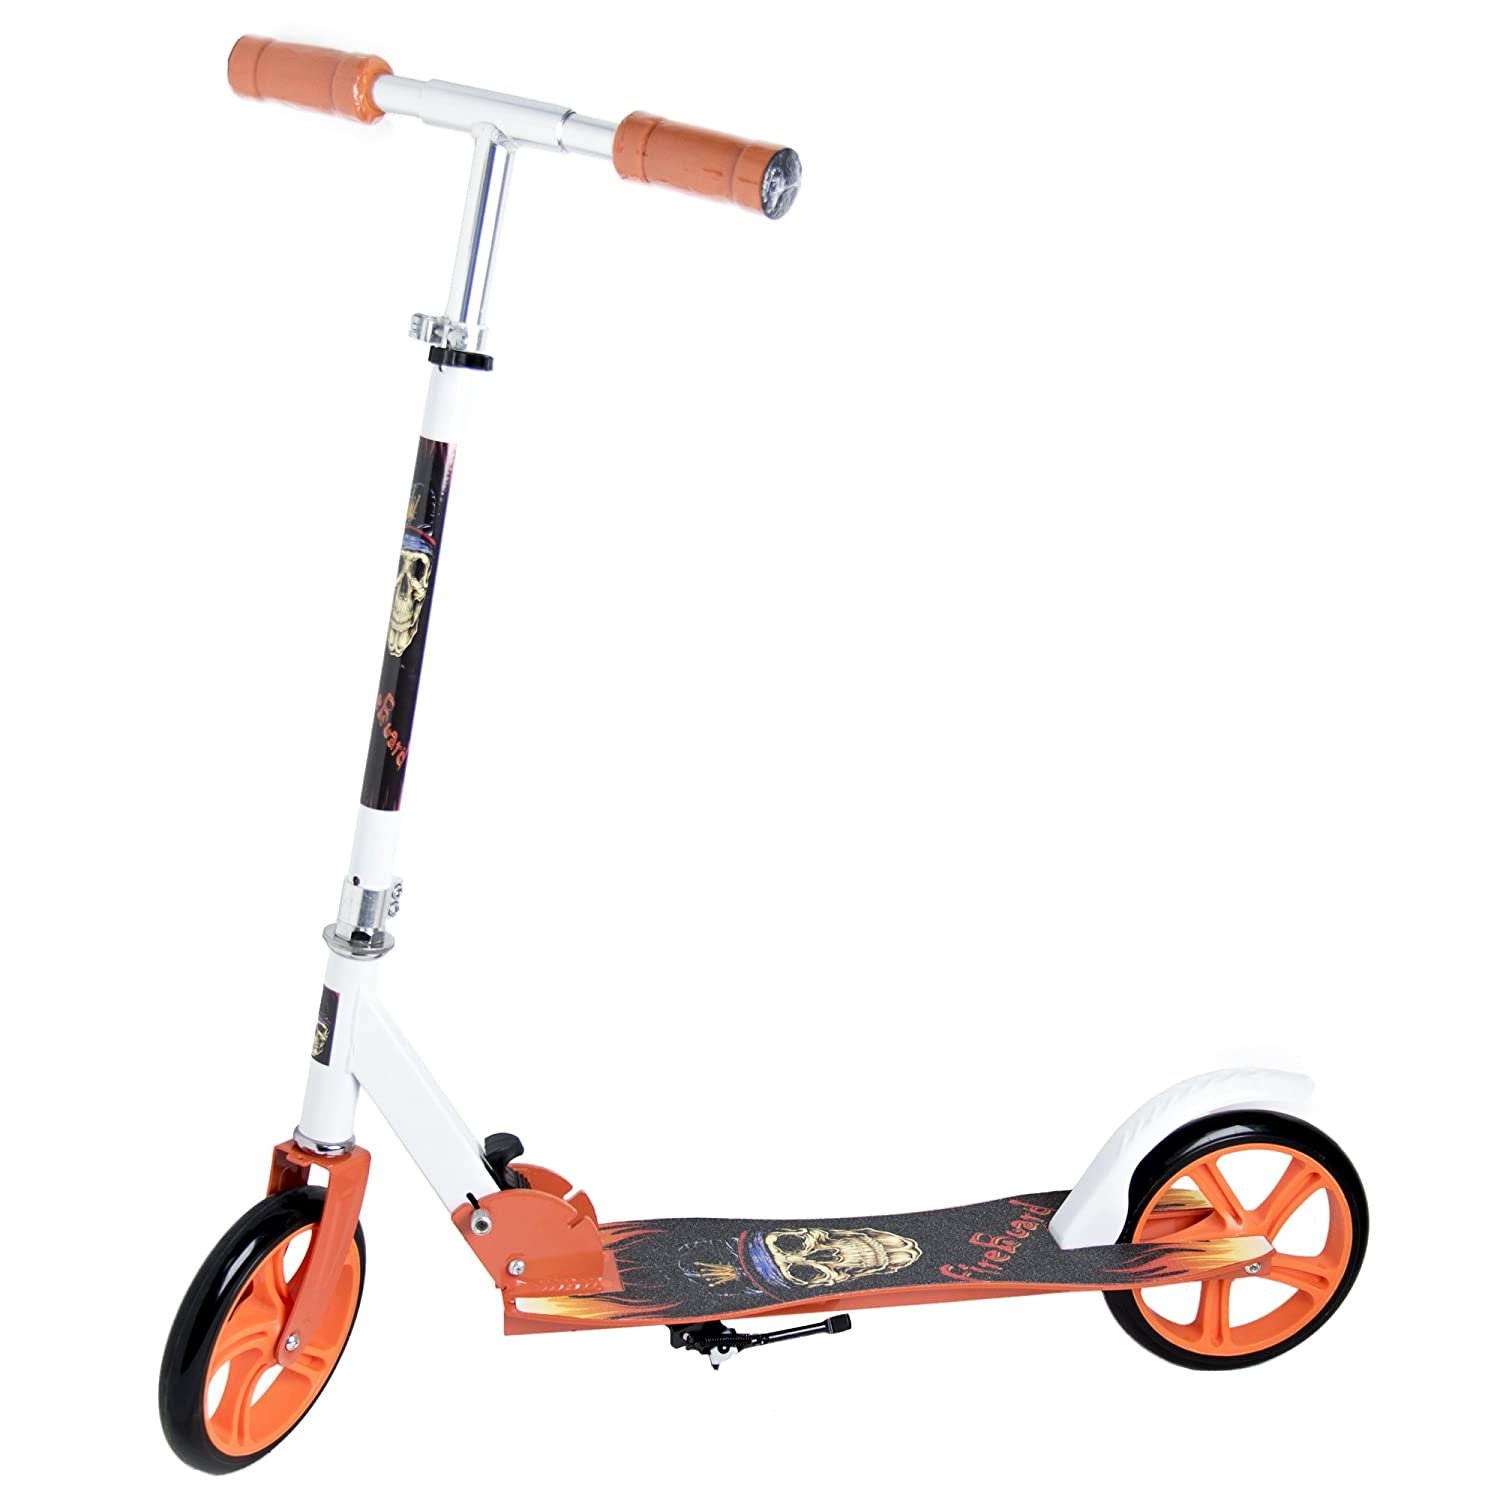 Patinete Scooter Urban Plegable Big Wheel, 2 ruedas grandes ...